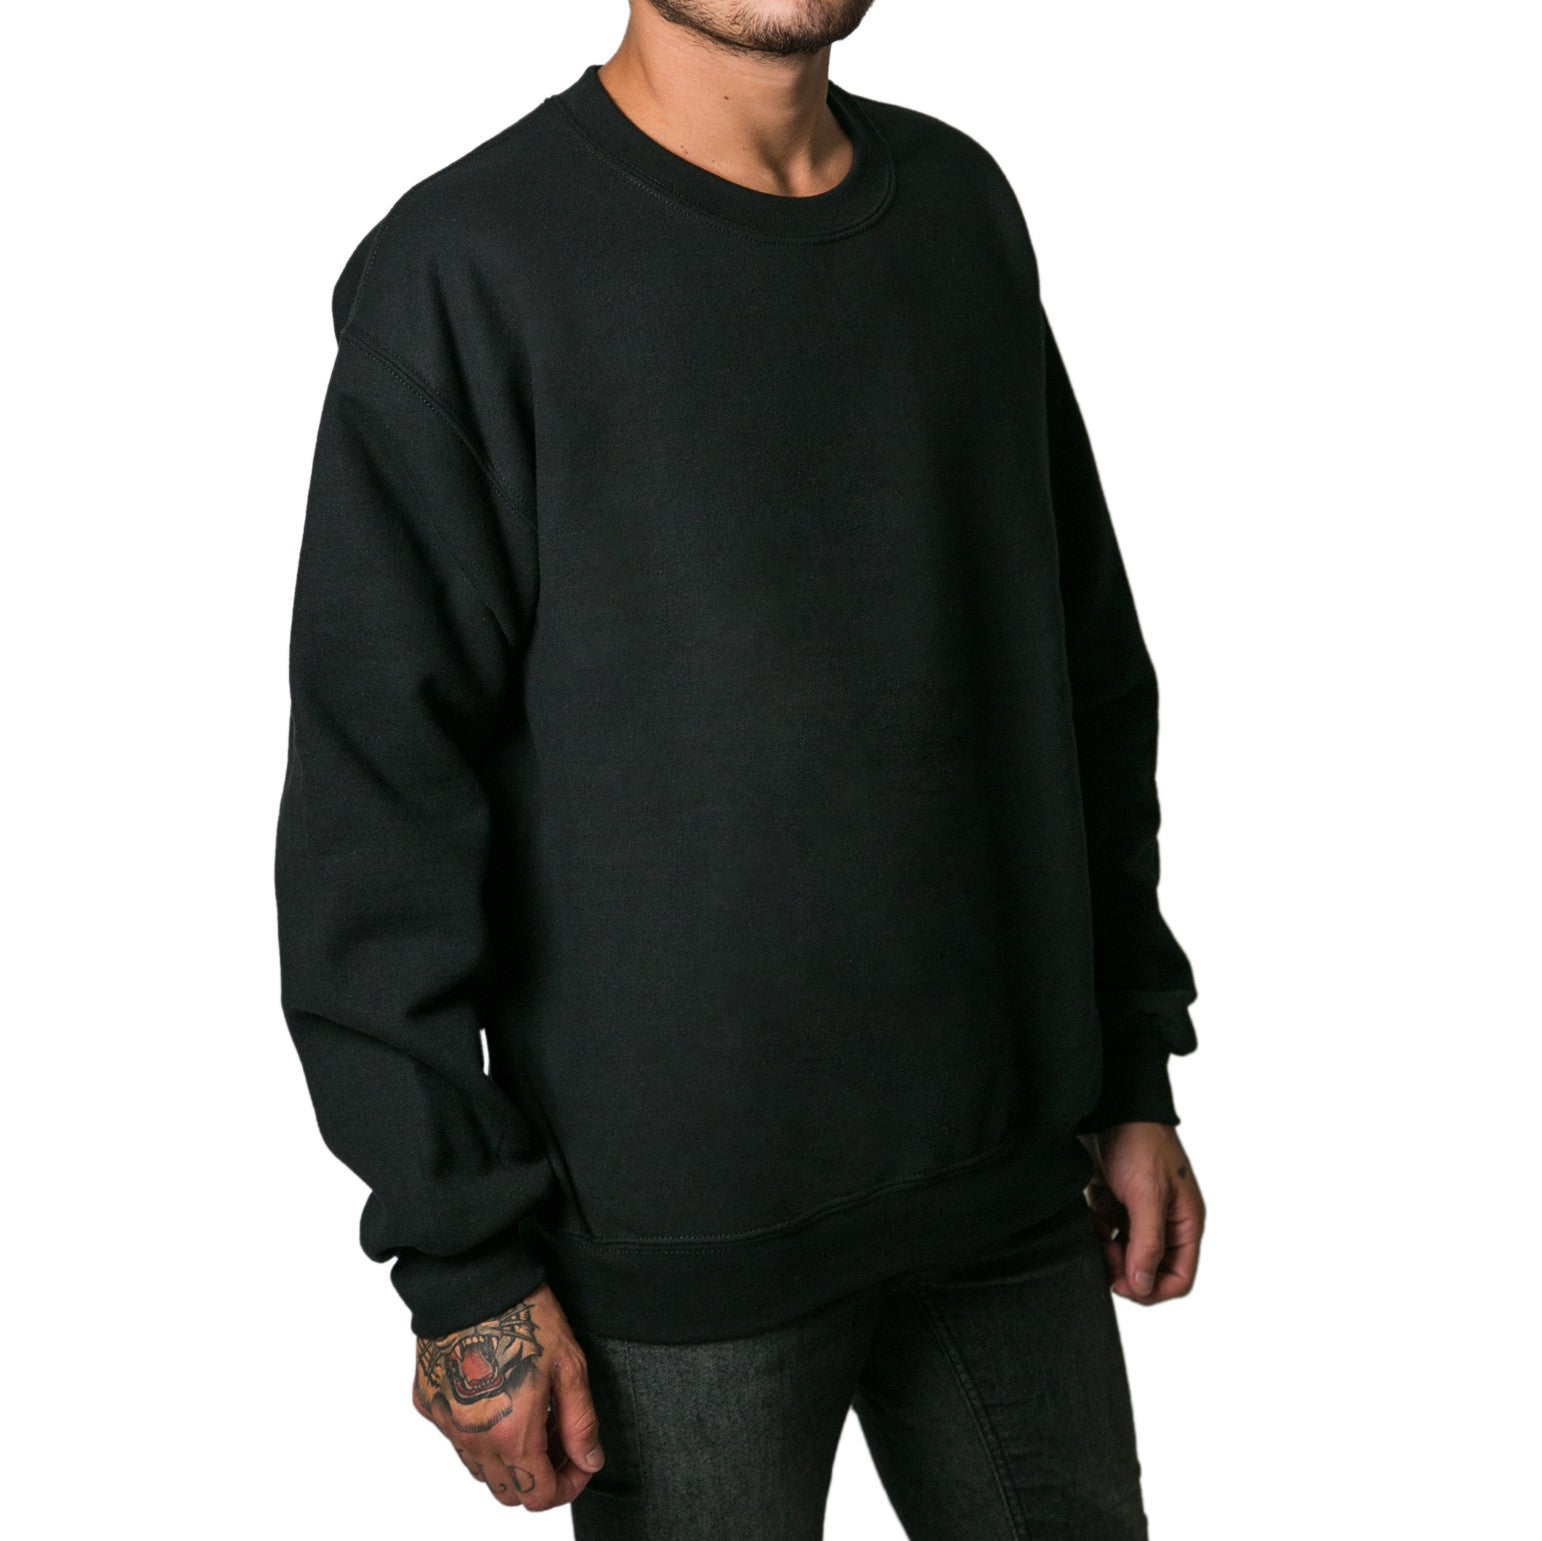 Techno 00 Sweatshirt - Fol The Brand